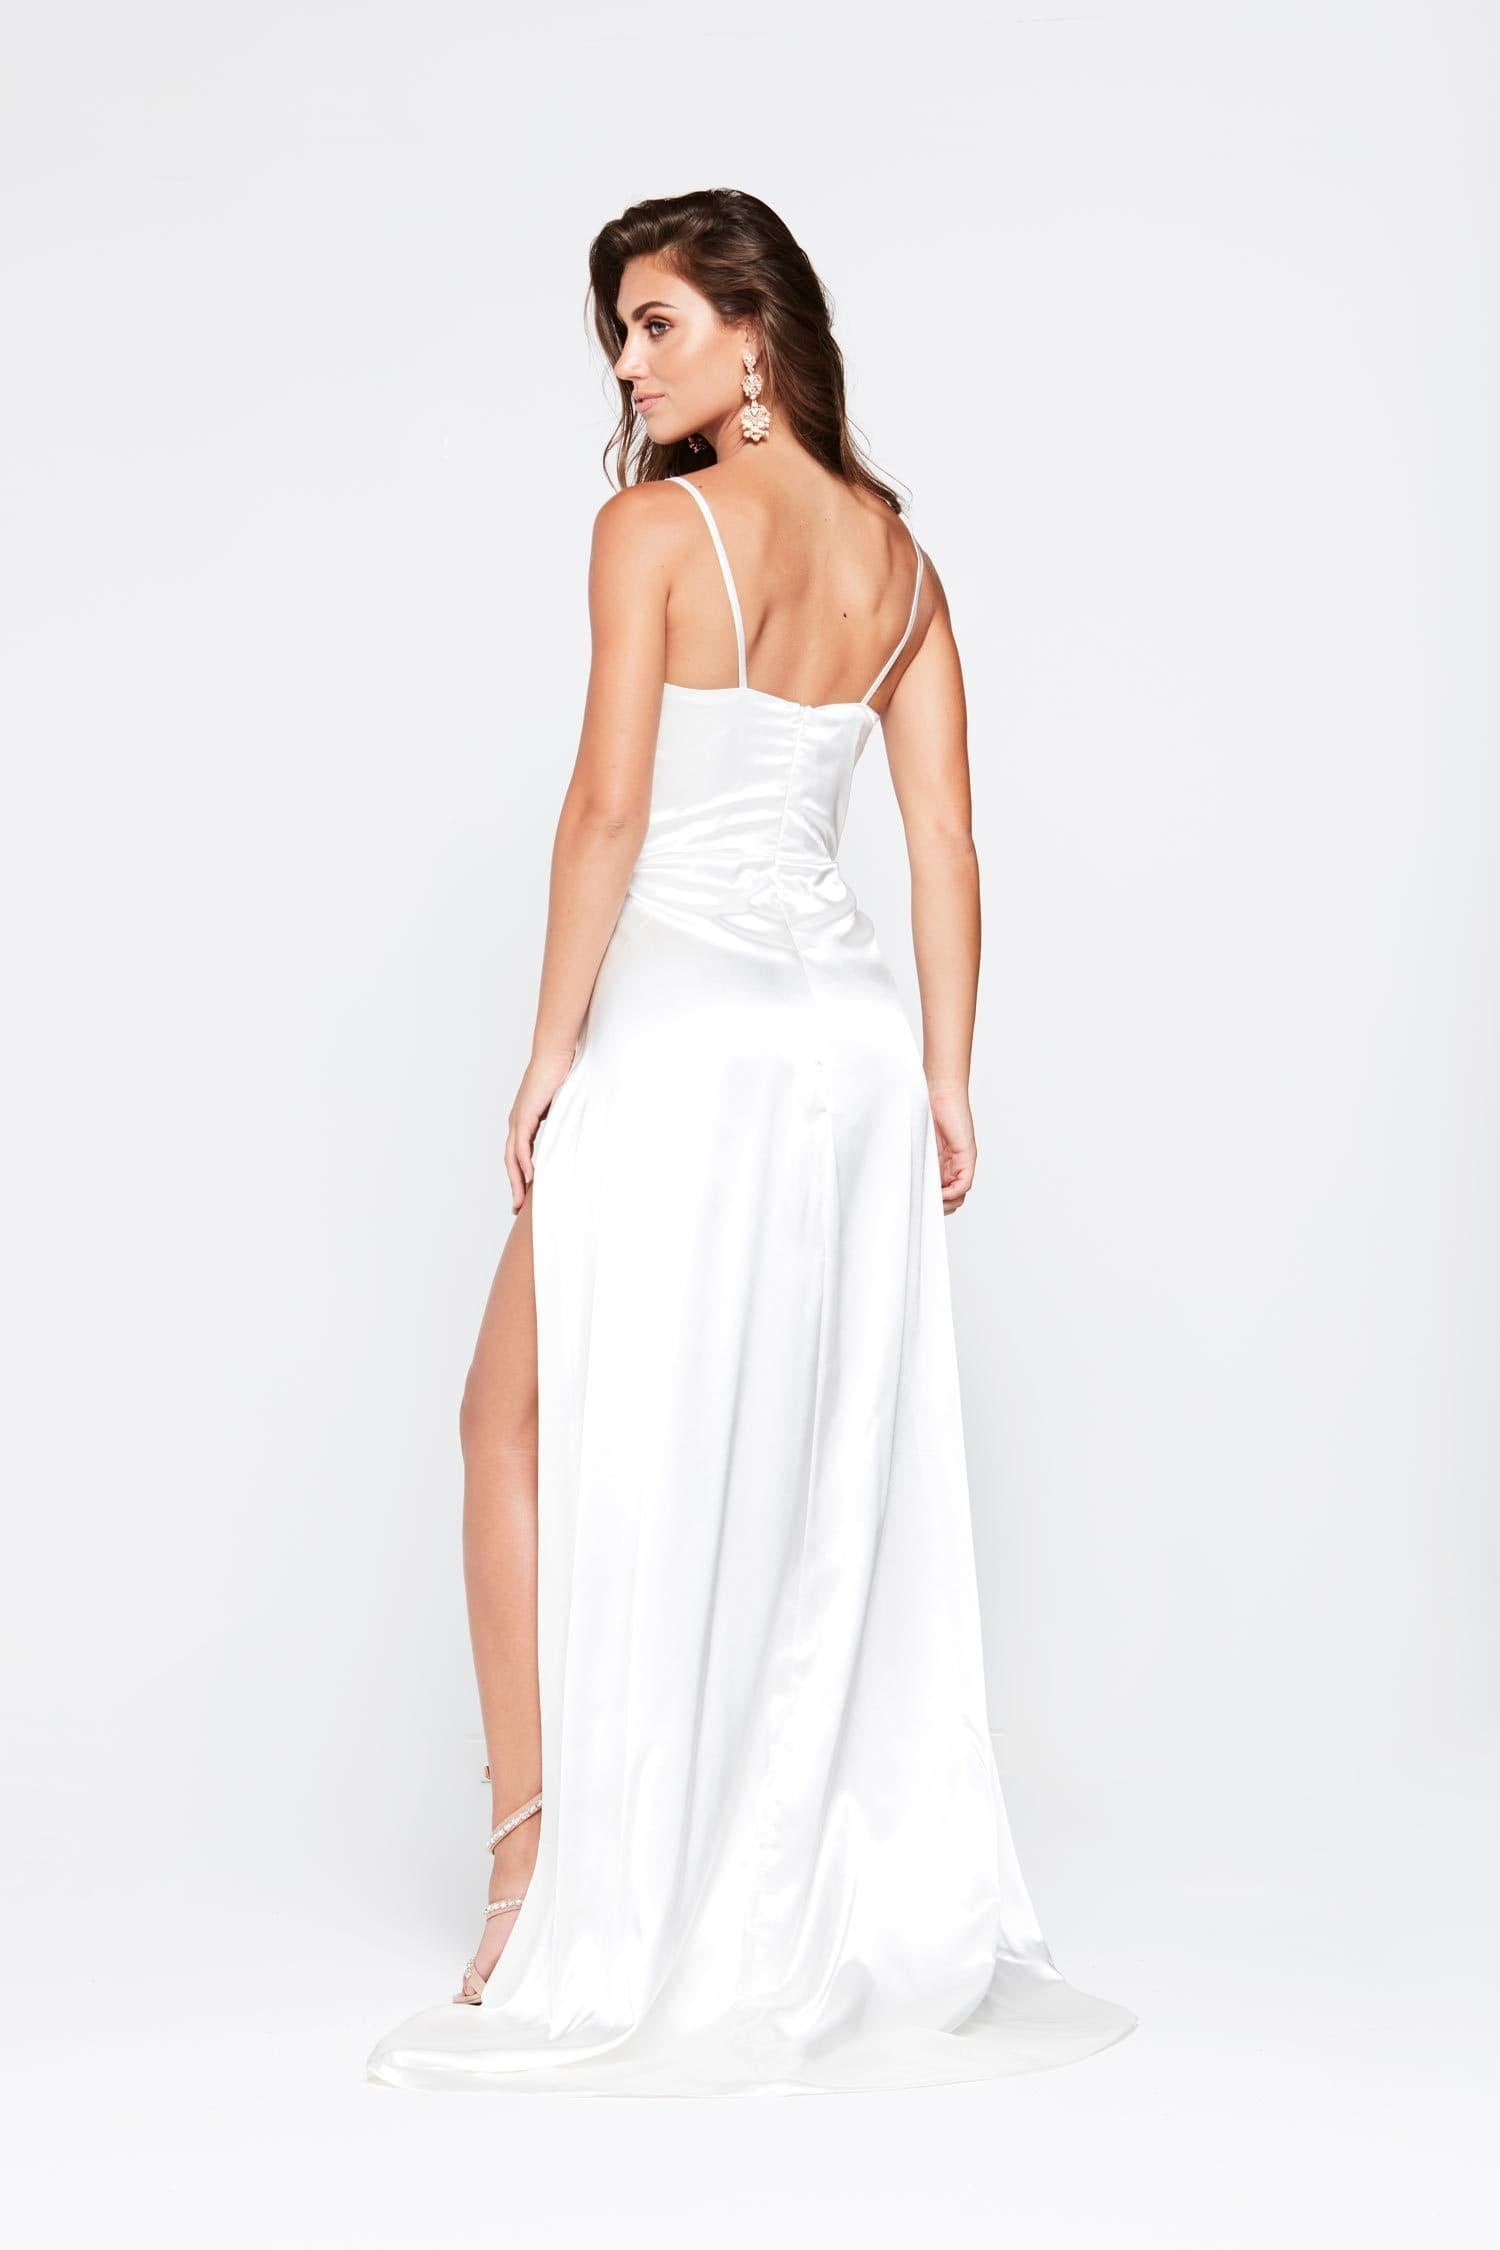 A&N Tiffany - White Satin Gown with V Neck and Two Slits